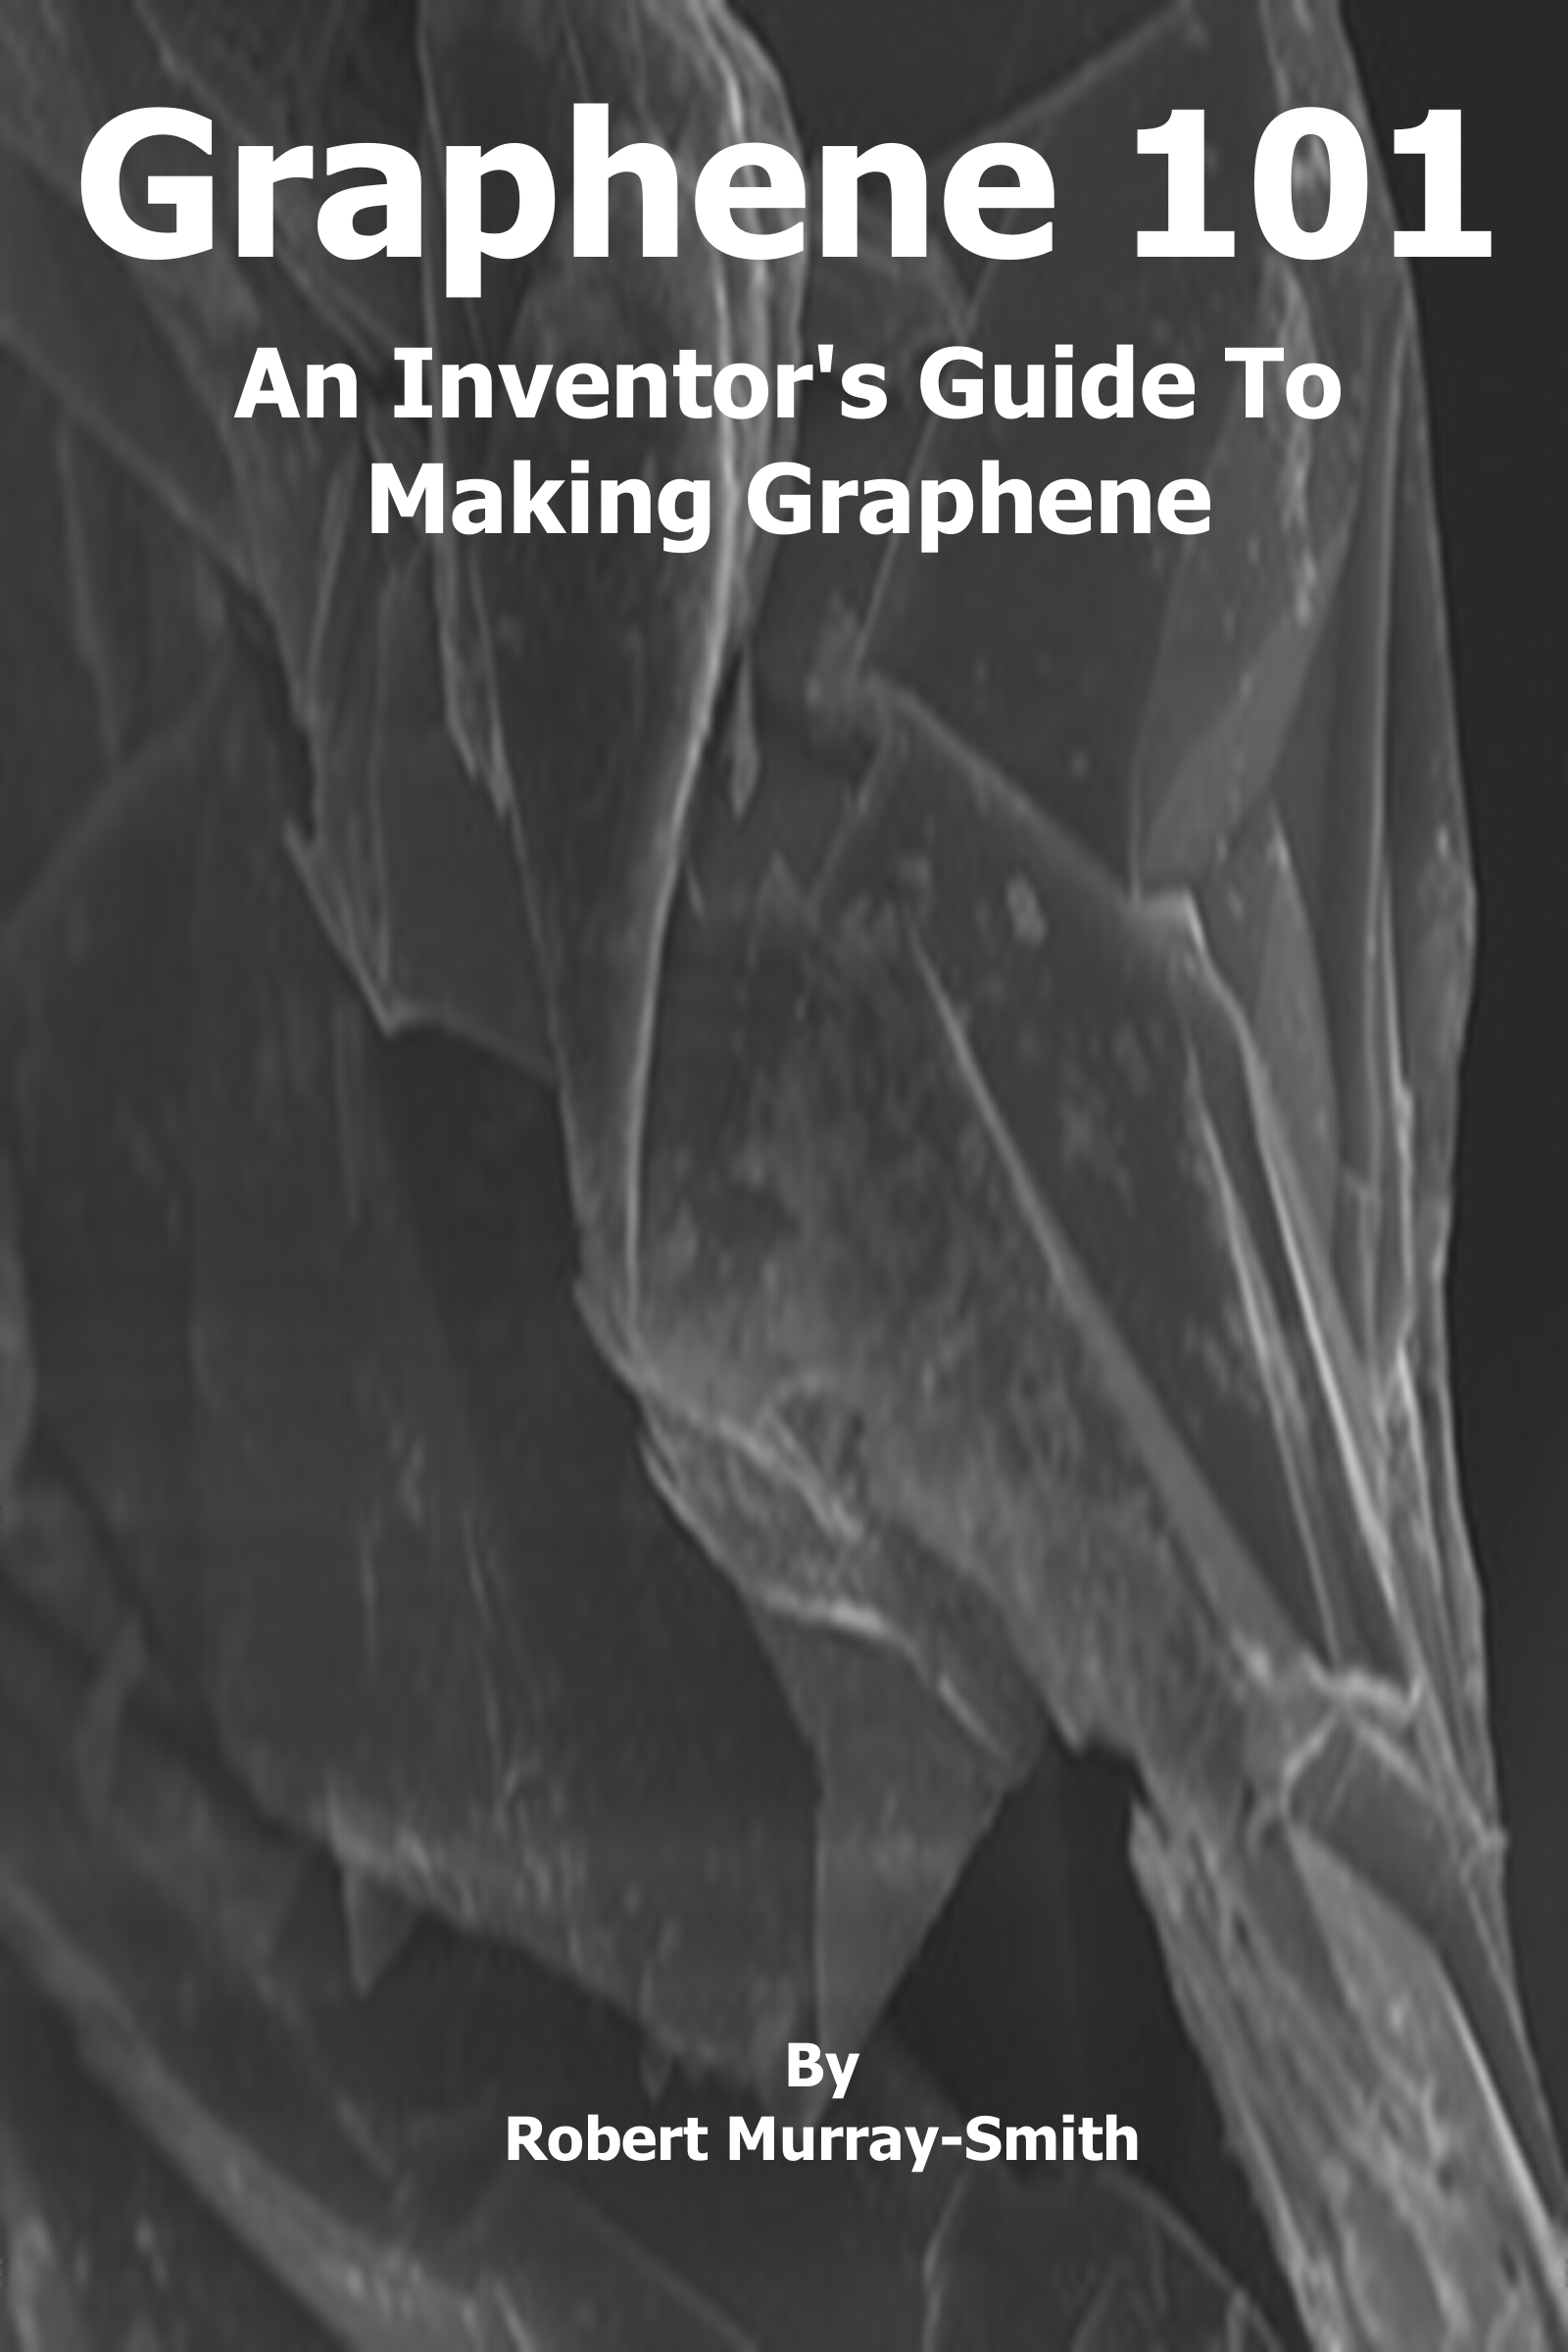 Graphene 101 An Inventor's Guide to Making Graphene By: Robert Murray-Smith